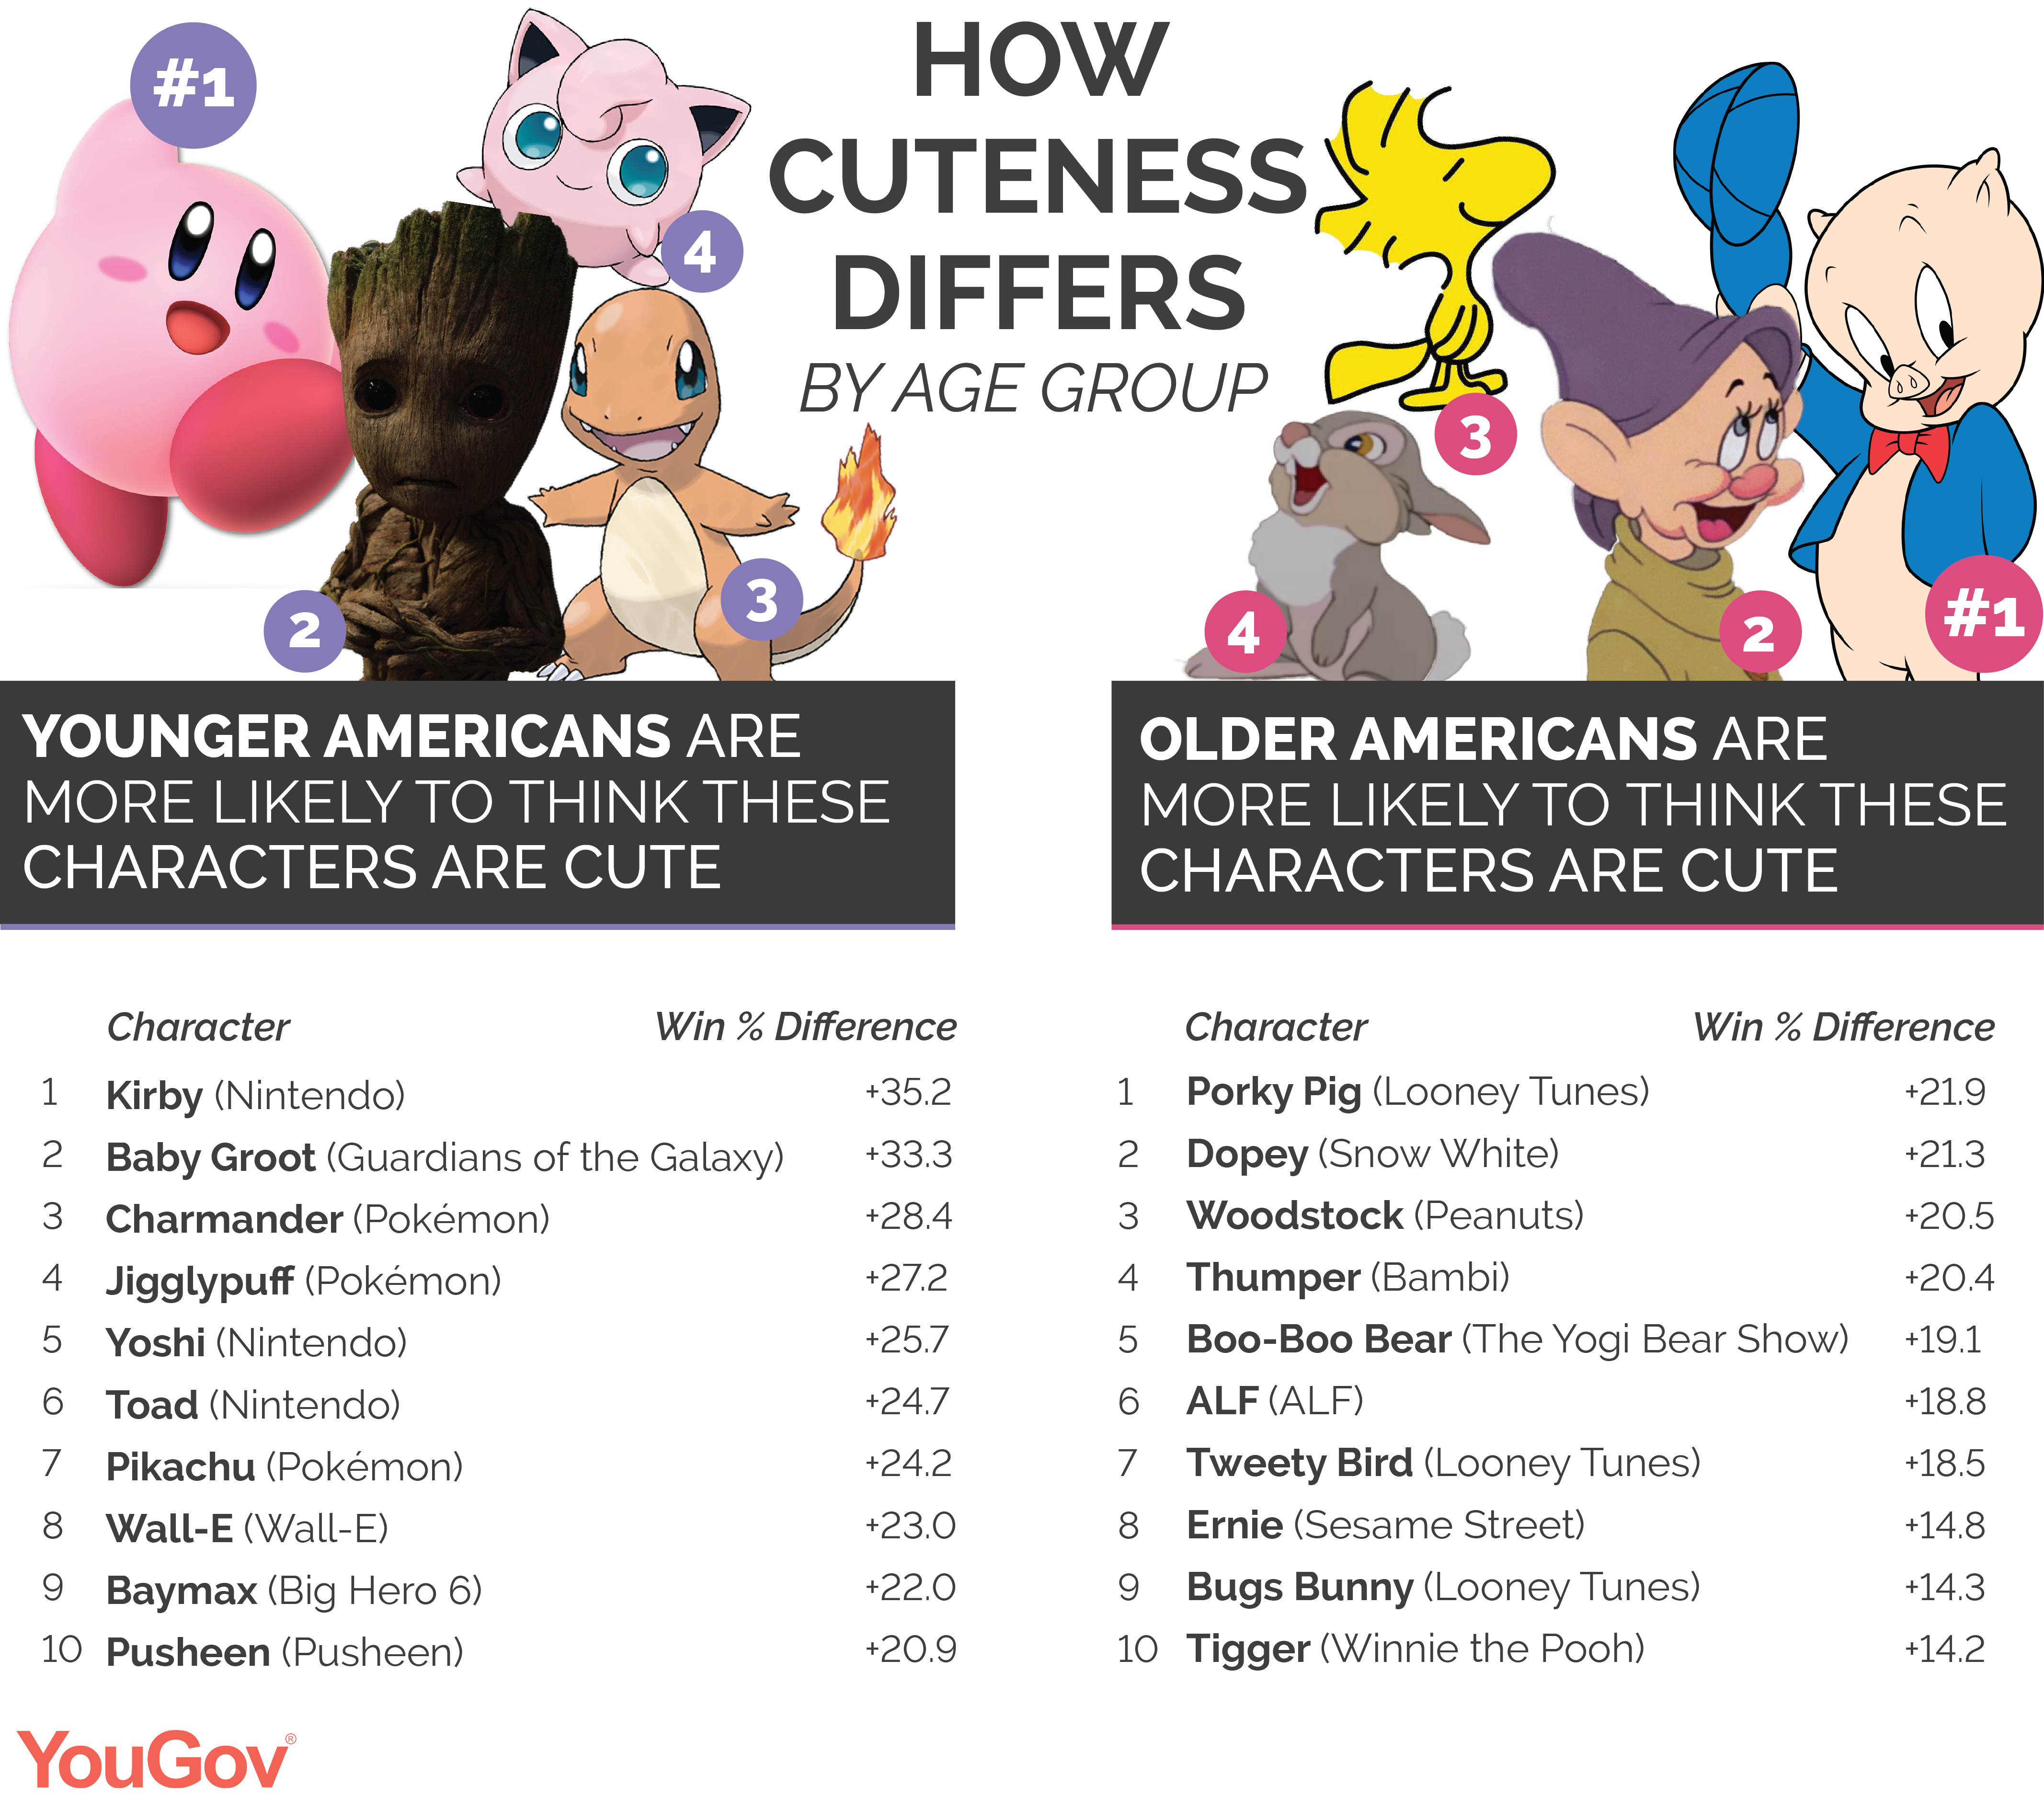 How cuteness differs by age group